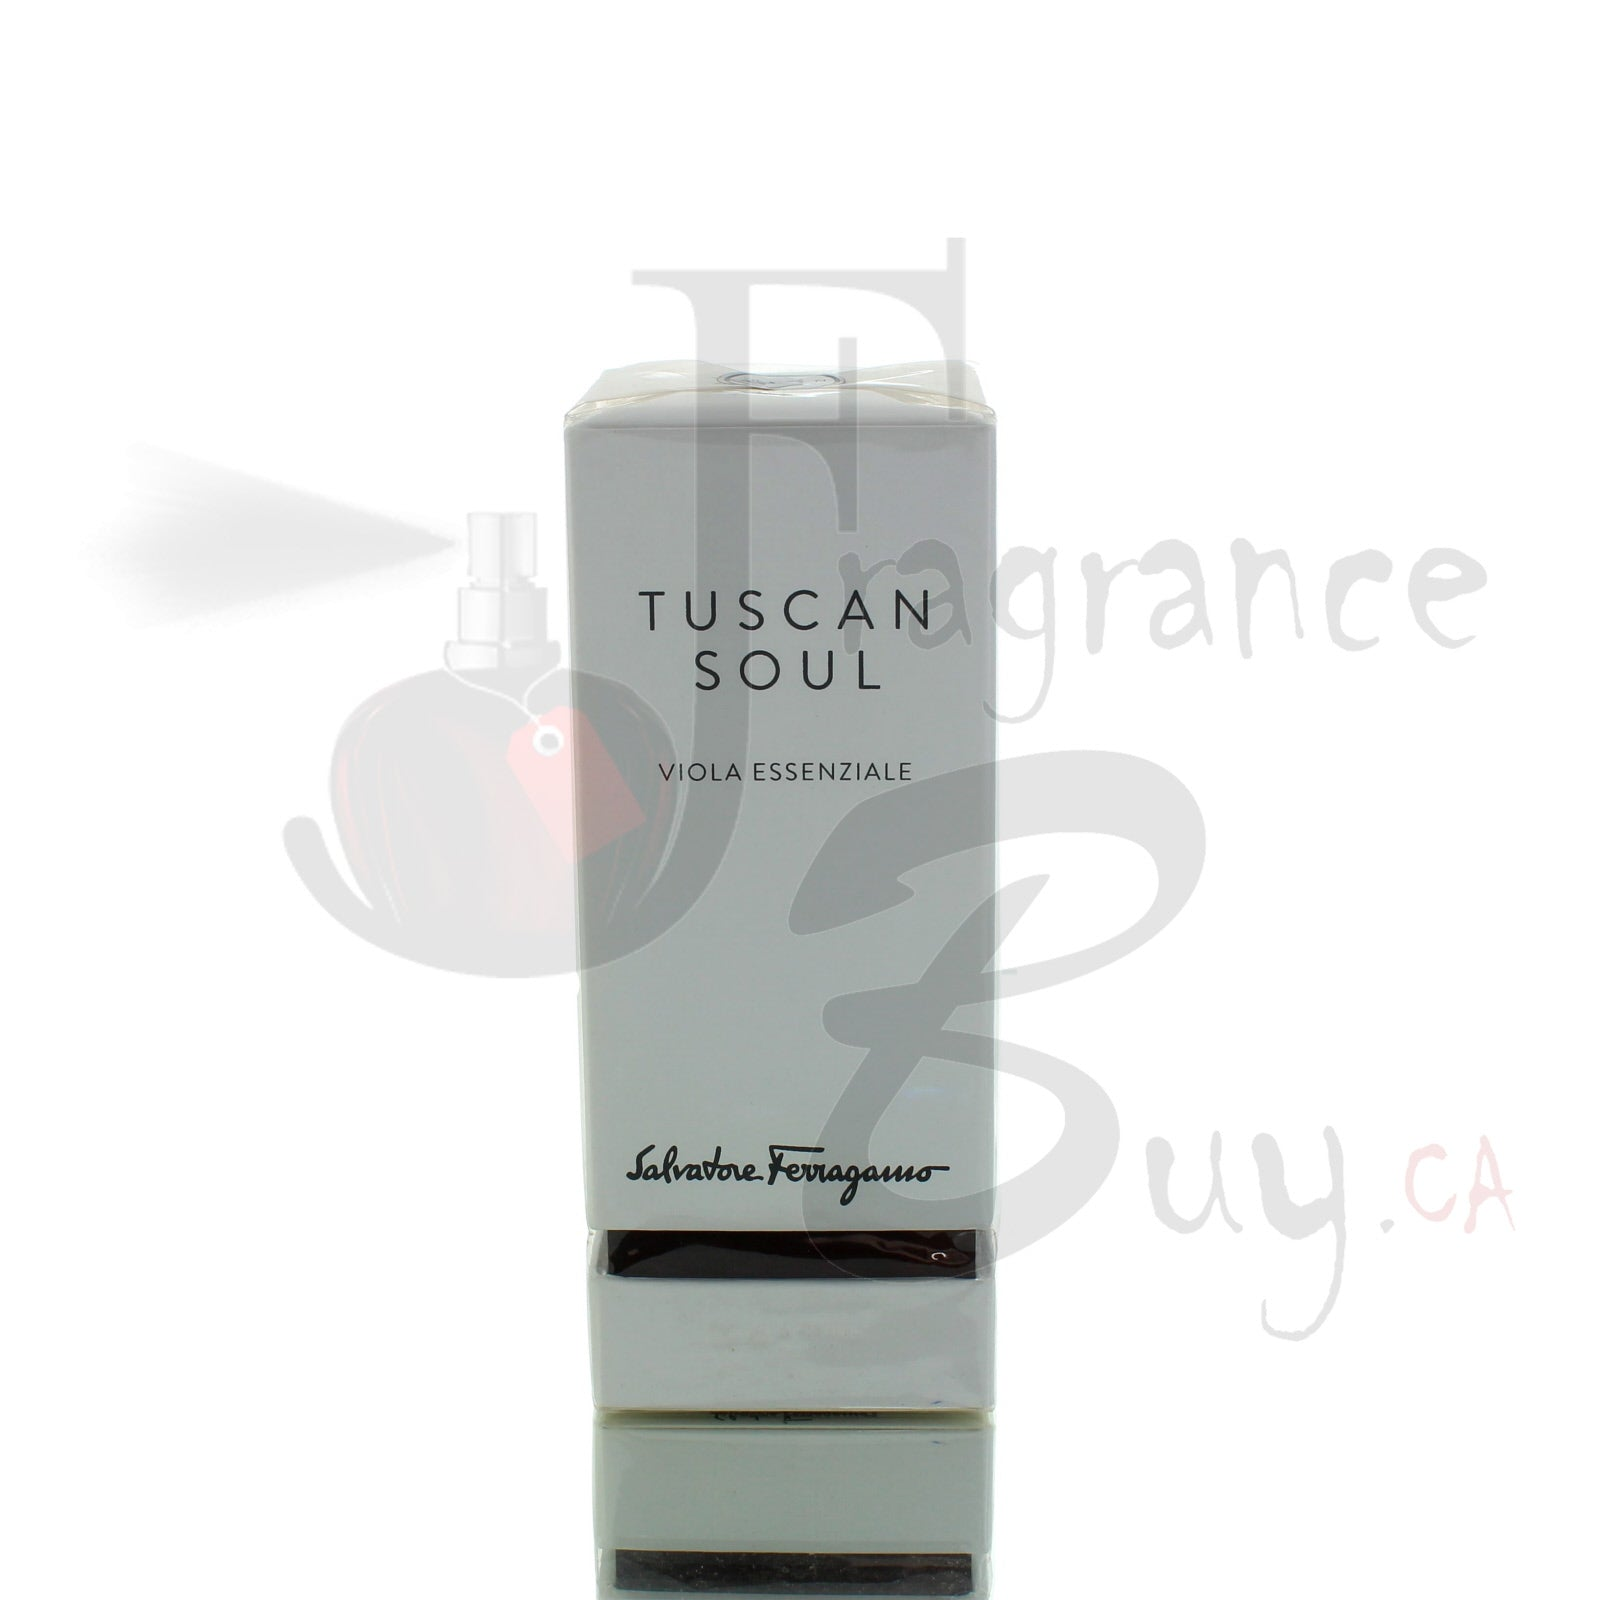 Salvatore Ferragamo Tuscan Scent Viola Essenziale For Man/Woman